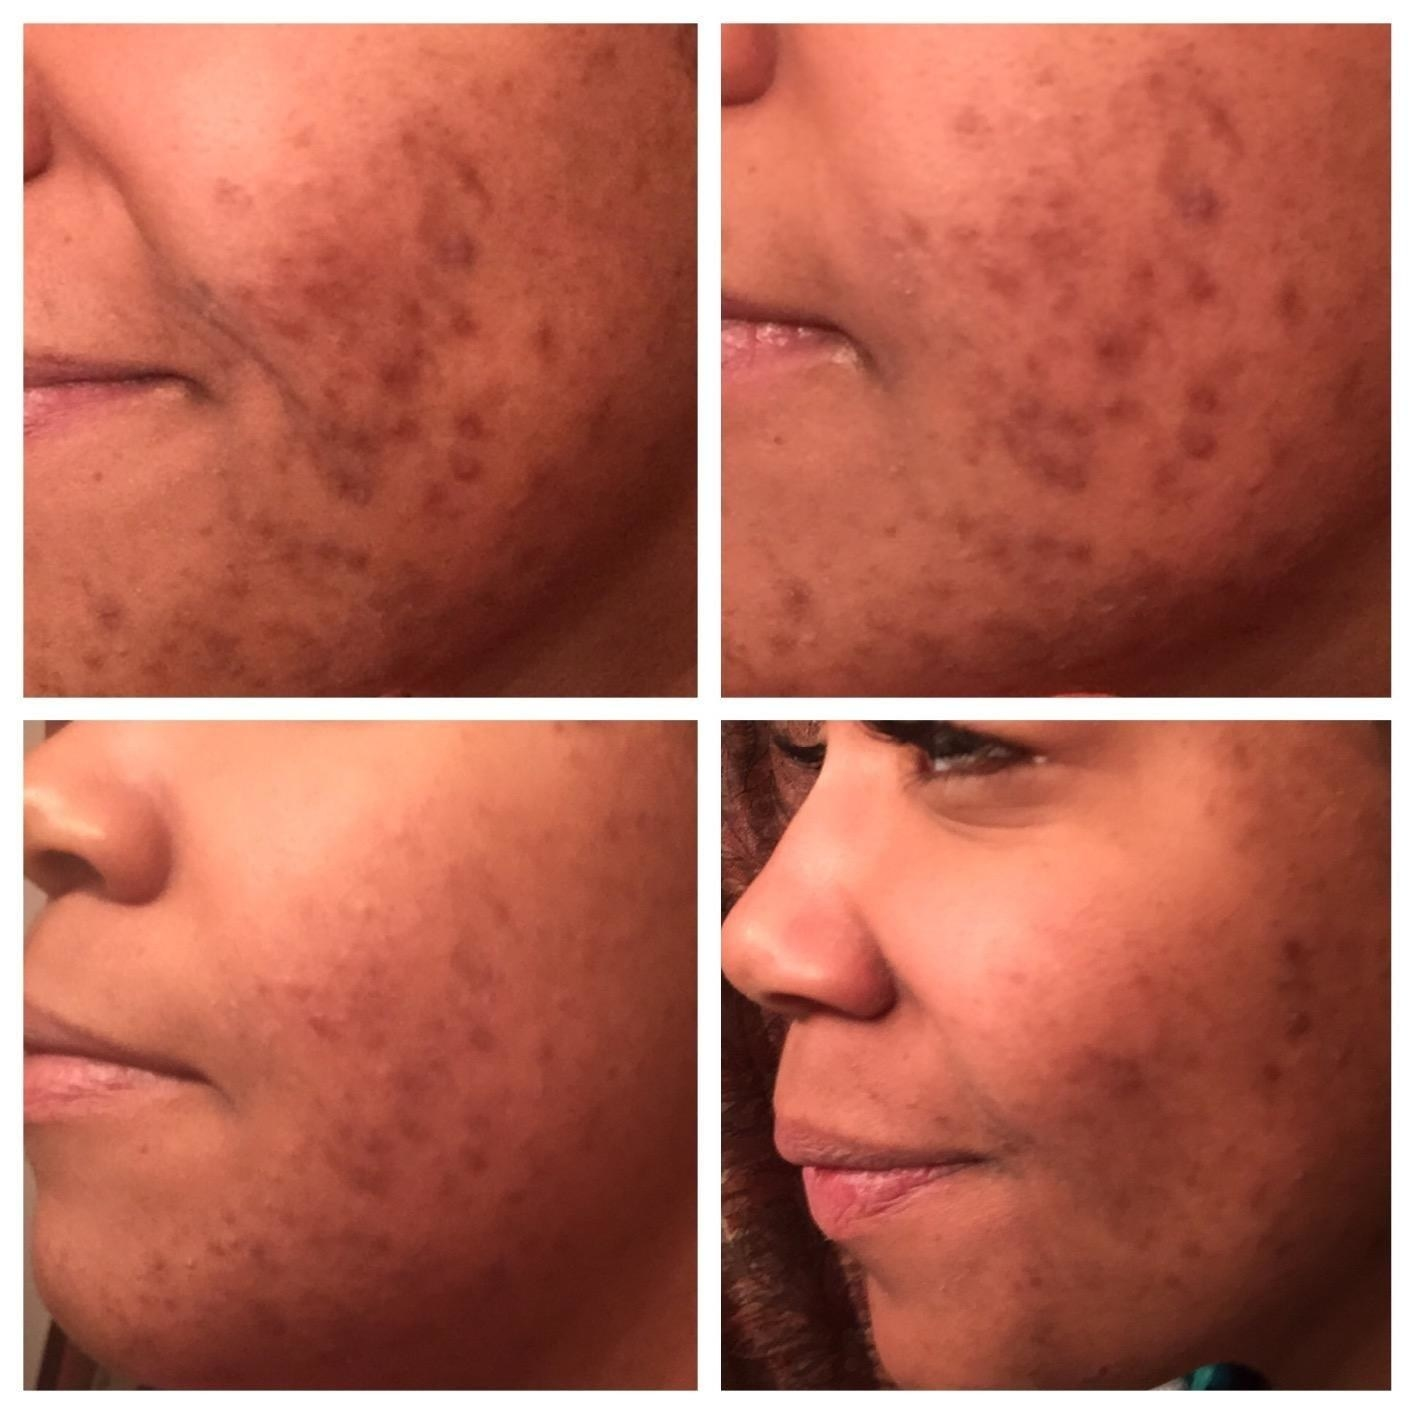 Before and after showing the dark scars on reviewer's cheek have lightened dramatically